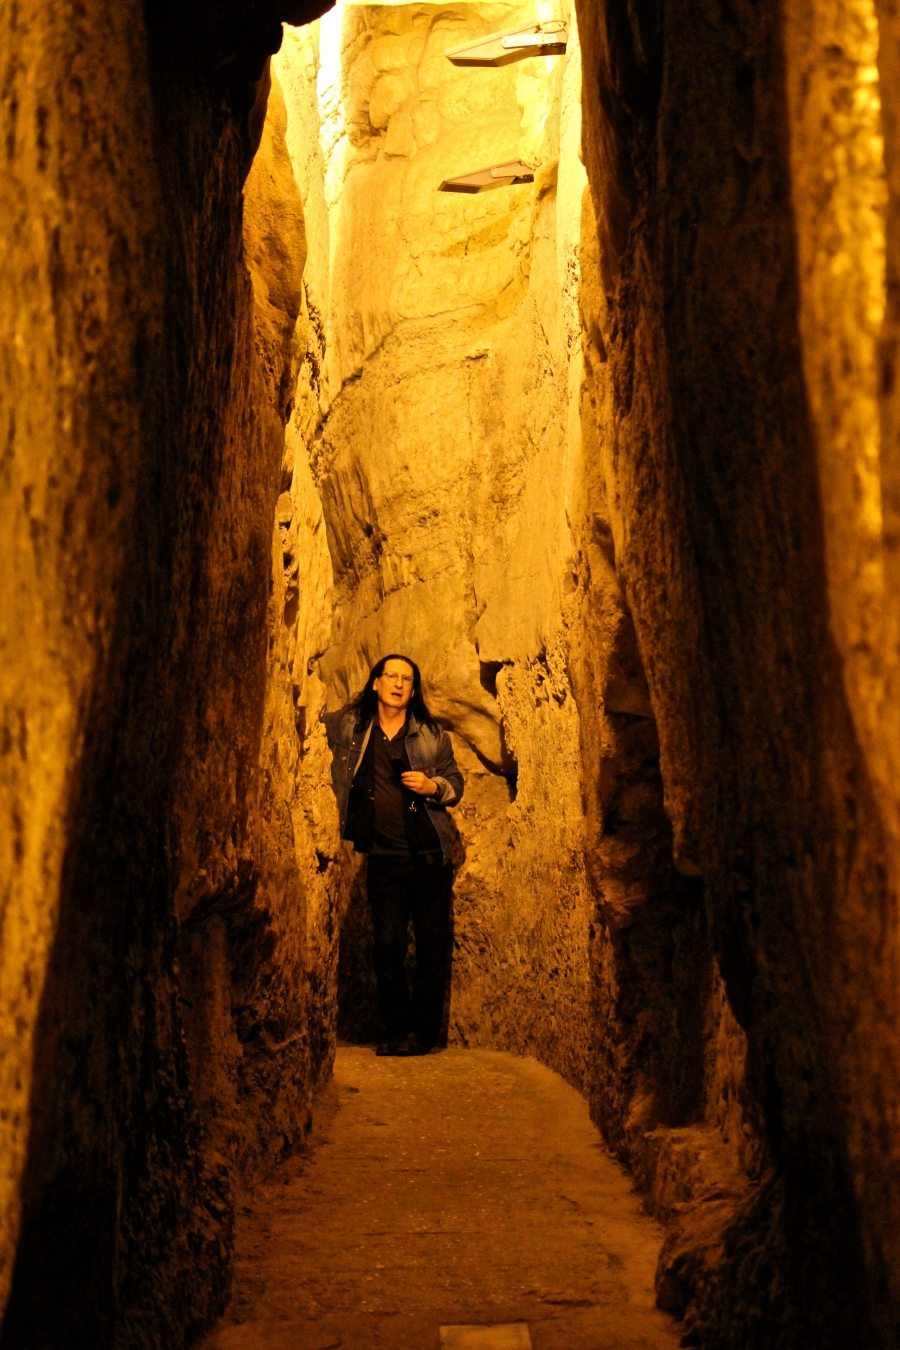 Me in a shaft of light under the Wailing Wall